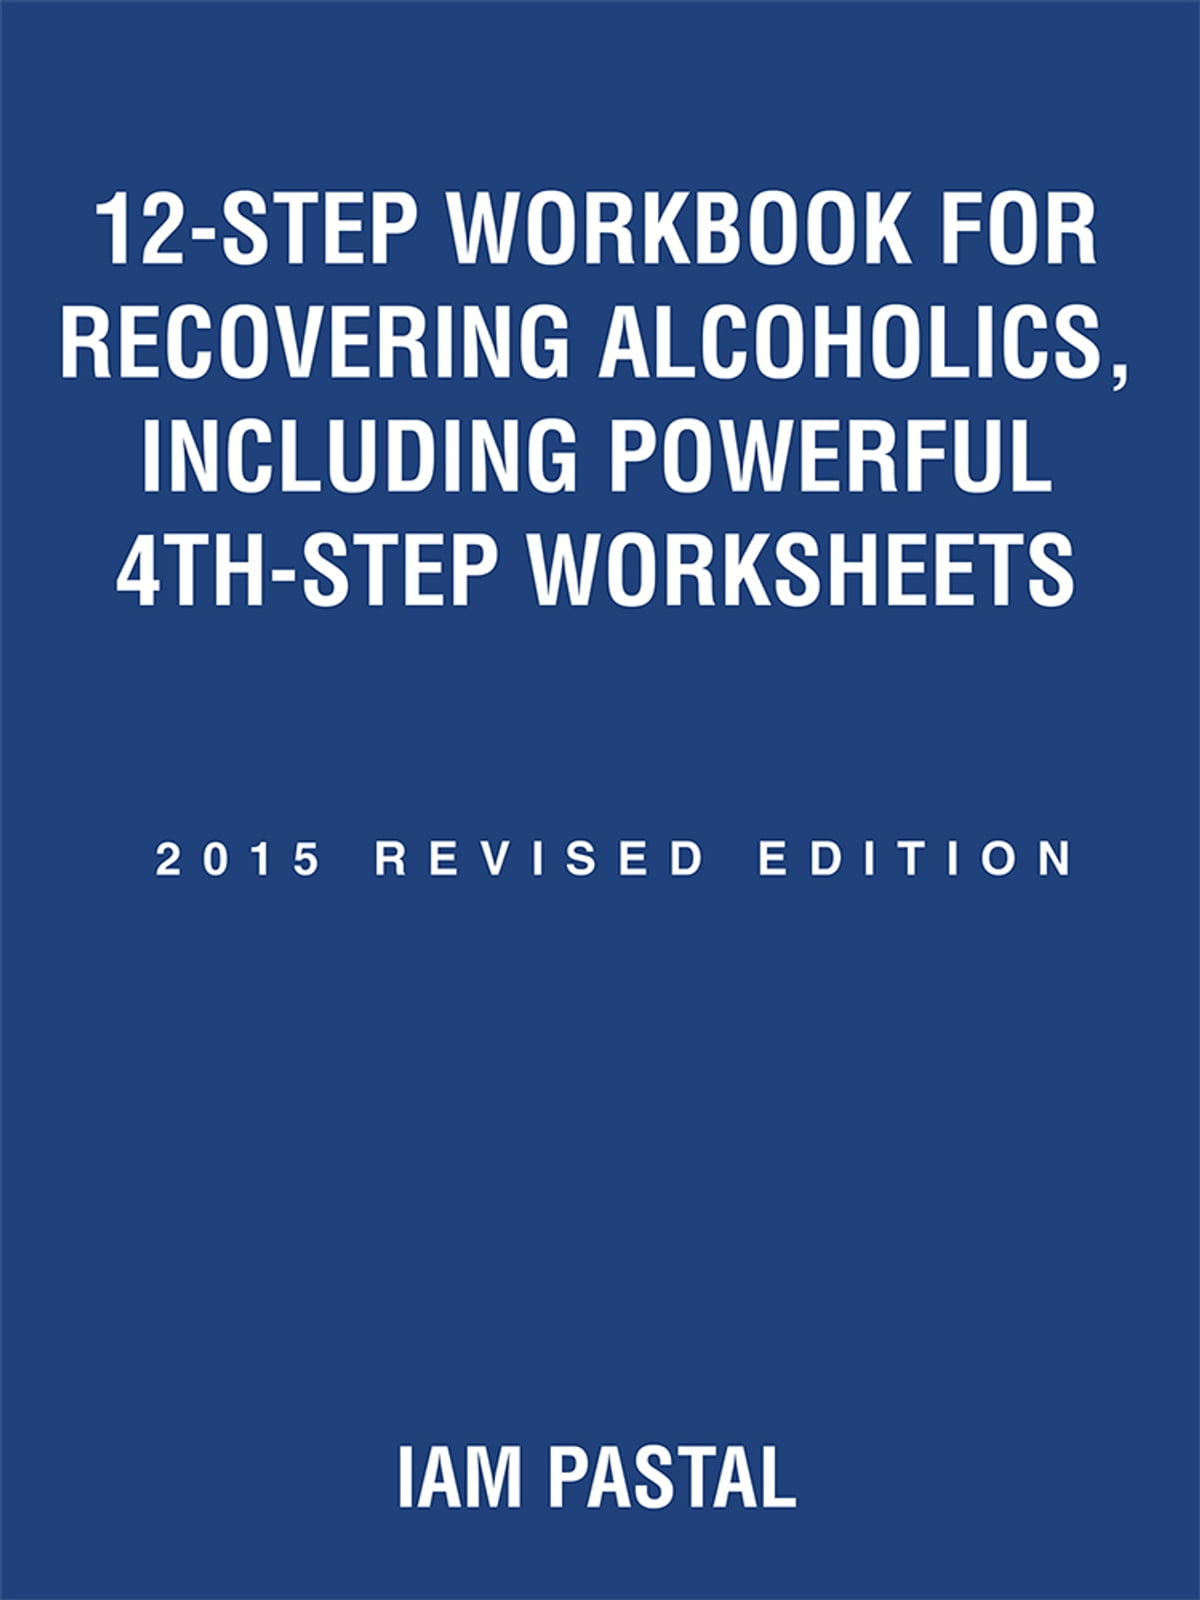 Worksheets Hazelden 4th Step Worksheet 12 step workbook for recovering alcoholics including powerful 4th worksheets ebook by iam pastal 9781504329675 rakuten